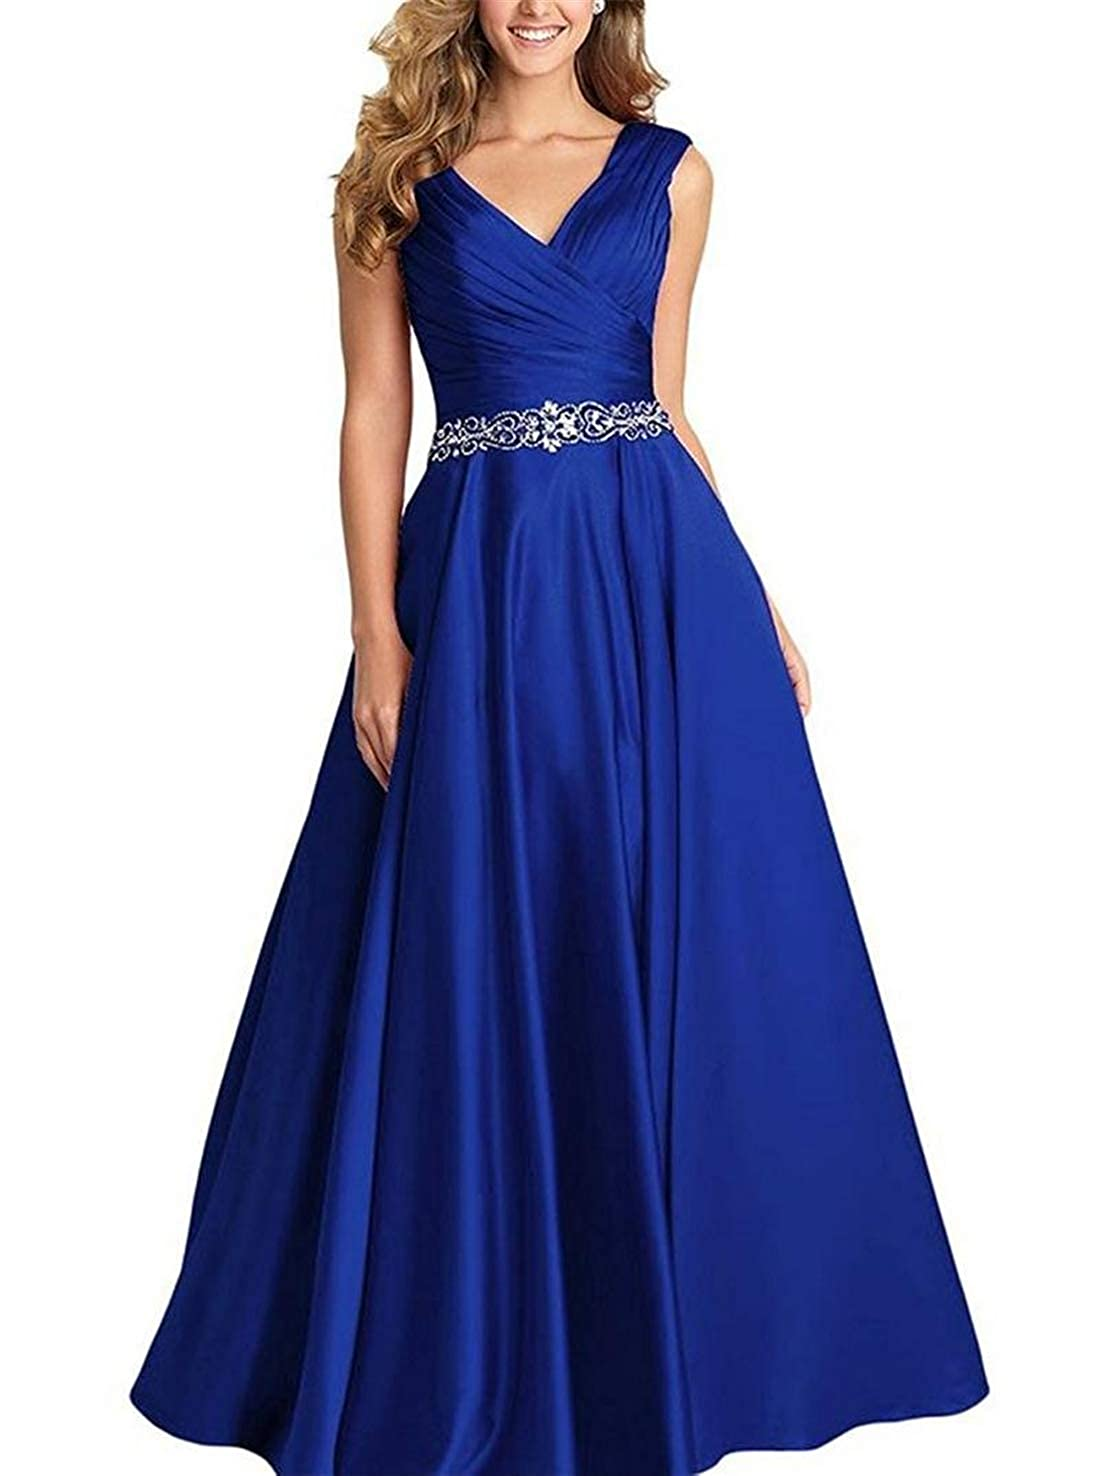 Royal bluee Stylefun Womens Long Beaded Prom Dress A Line VNeck Party Evening Gowns XIN004